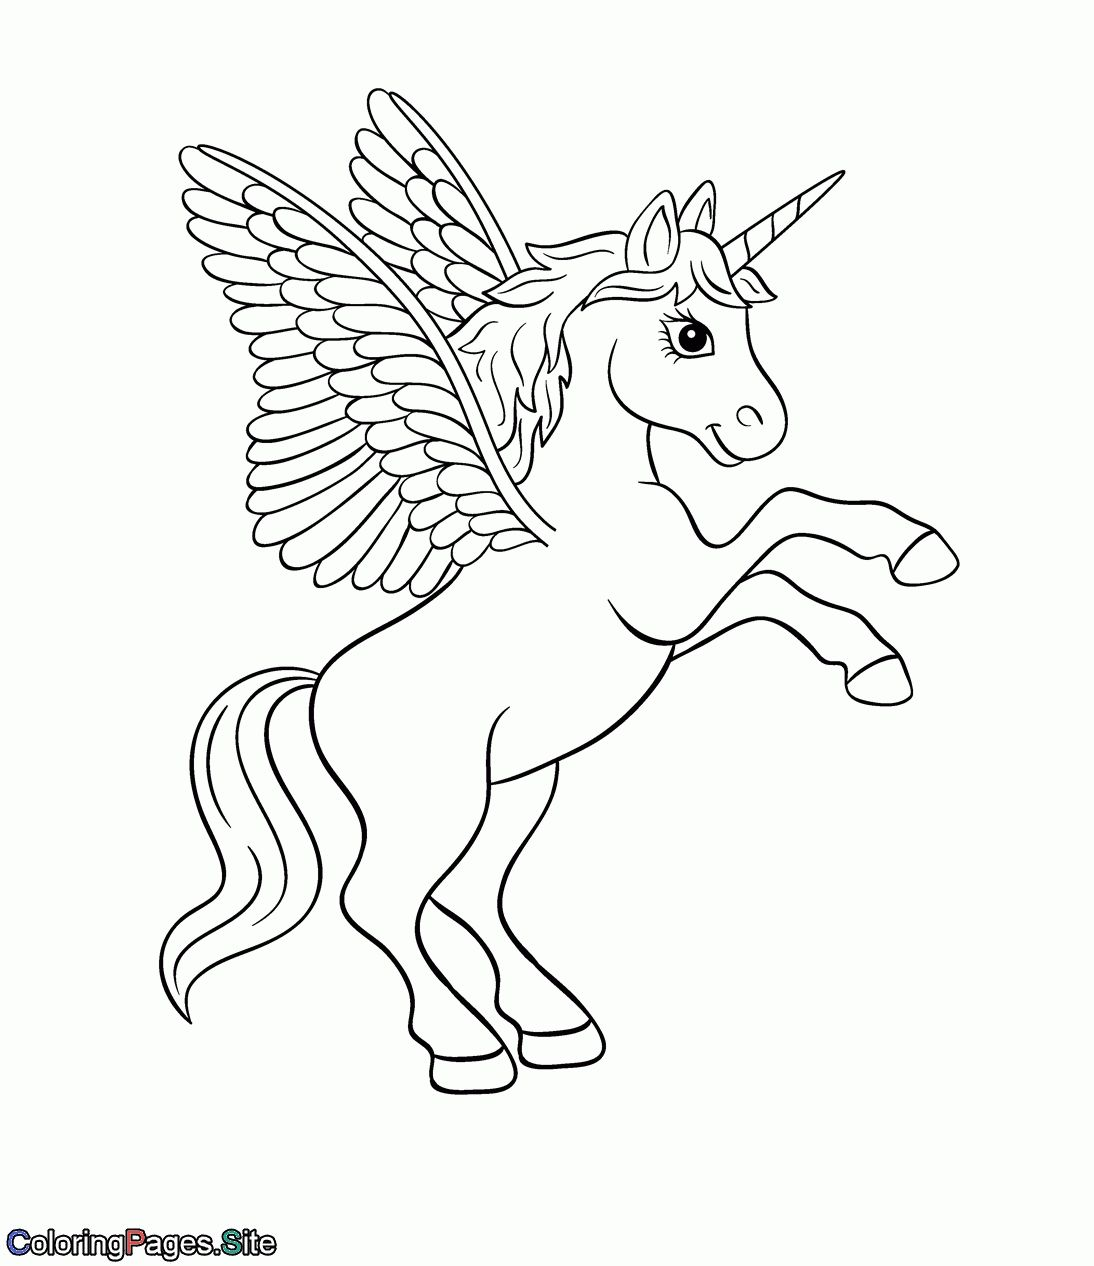 Coloring Pages Unicorn With Wings Coloring Pages Unicorn Pegasus Coloring Pages Unicorn Unicorn Coloring Pages Unicorn Pictures To Color Horse Coloring Pages